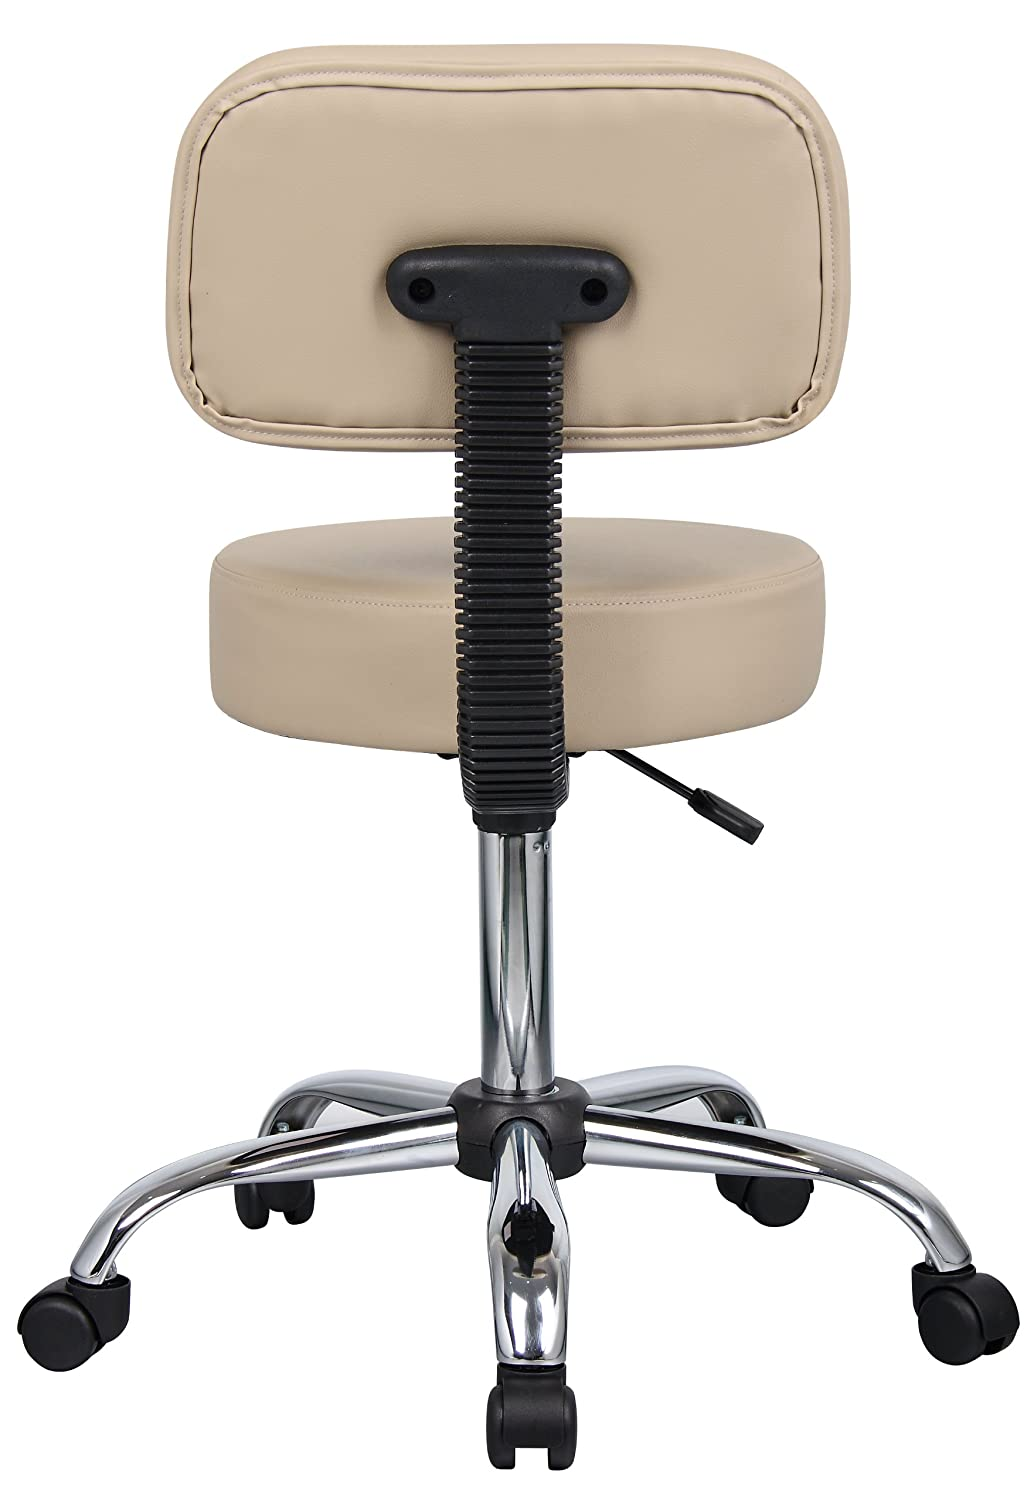 Amazon.com Boss Office Products B245-BG Be Well Medical Spa Stool with Back in Beige Kitchen u0026 Dining  sc 1 st  Amazon.com & Amazon.com: Boss Office Products B245-BG Be Well Medical Spa Stool ... islam-shia.org